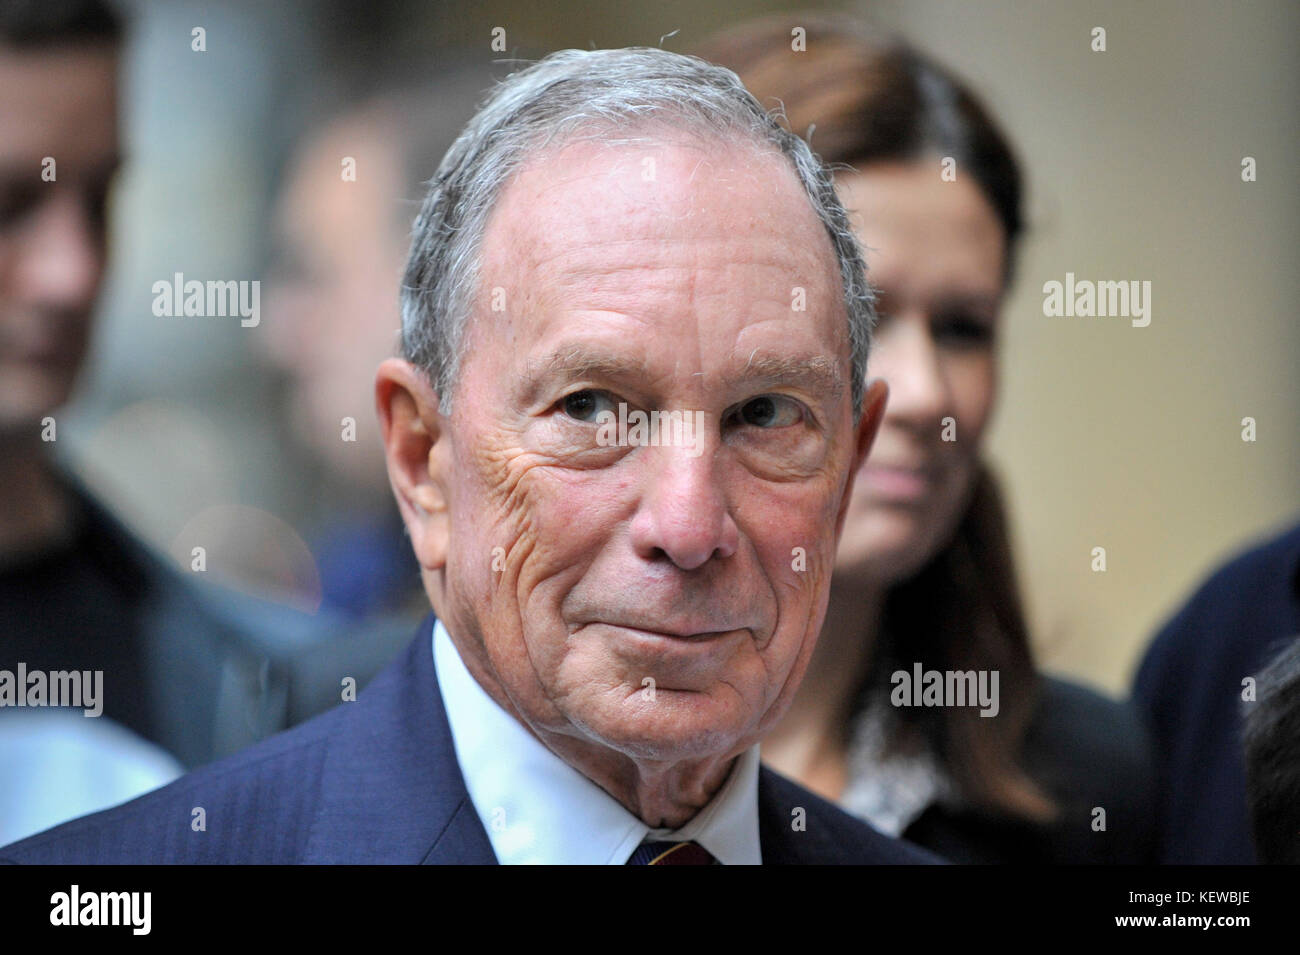 London, UK. 24th Oct, 2017. Michael Bloomberg at a photocall to mark the launch of Bloomberg's new European headquarters Stock Photo